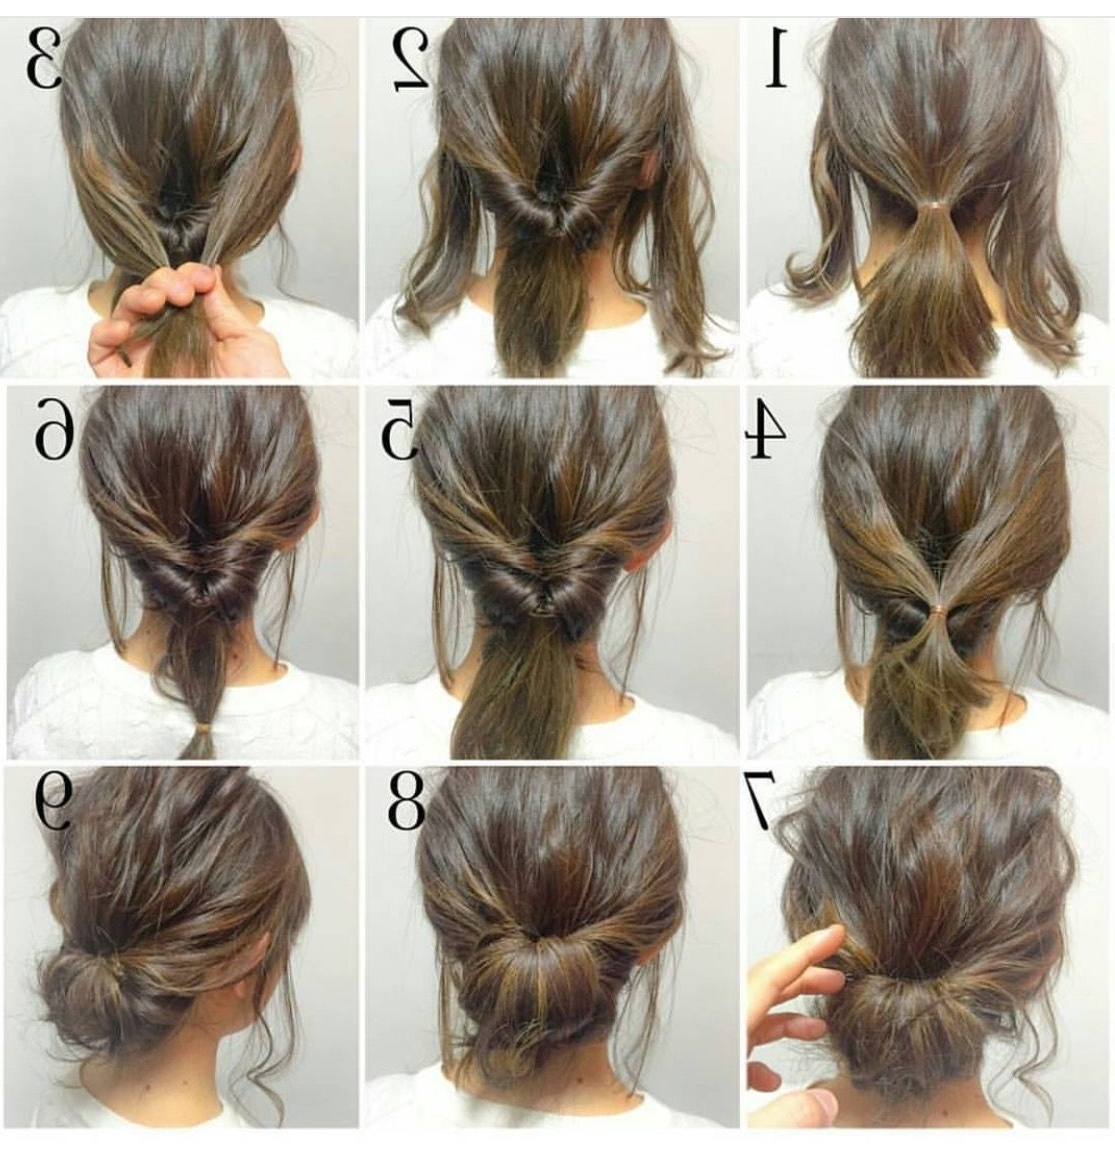 Easy, Hope This Works Out Quick Morning Hair! | • H A I R Regarding Quick Easy Updo Hairstyles For Short Hair (Gallery 11 of 15)